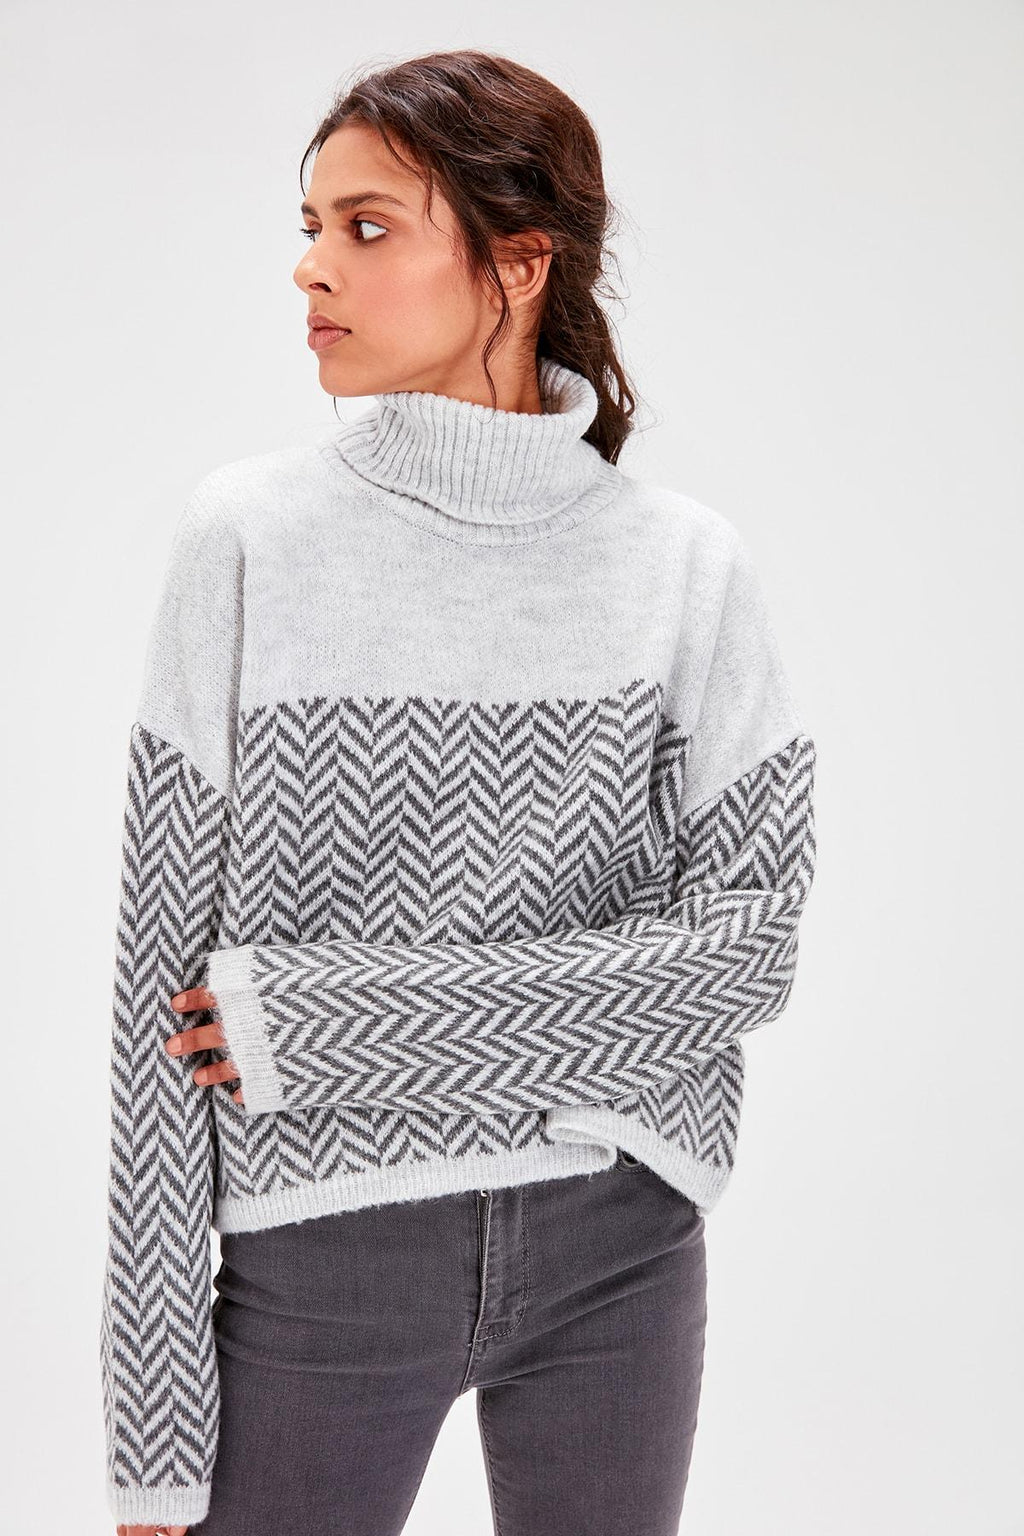 Gray Herringbone Pattern Knitwear Sweater